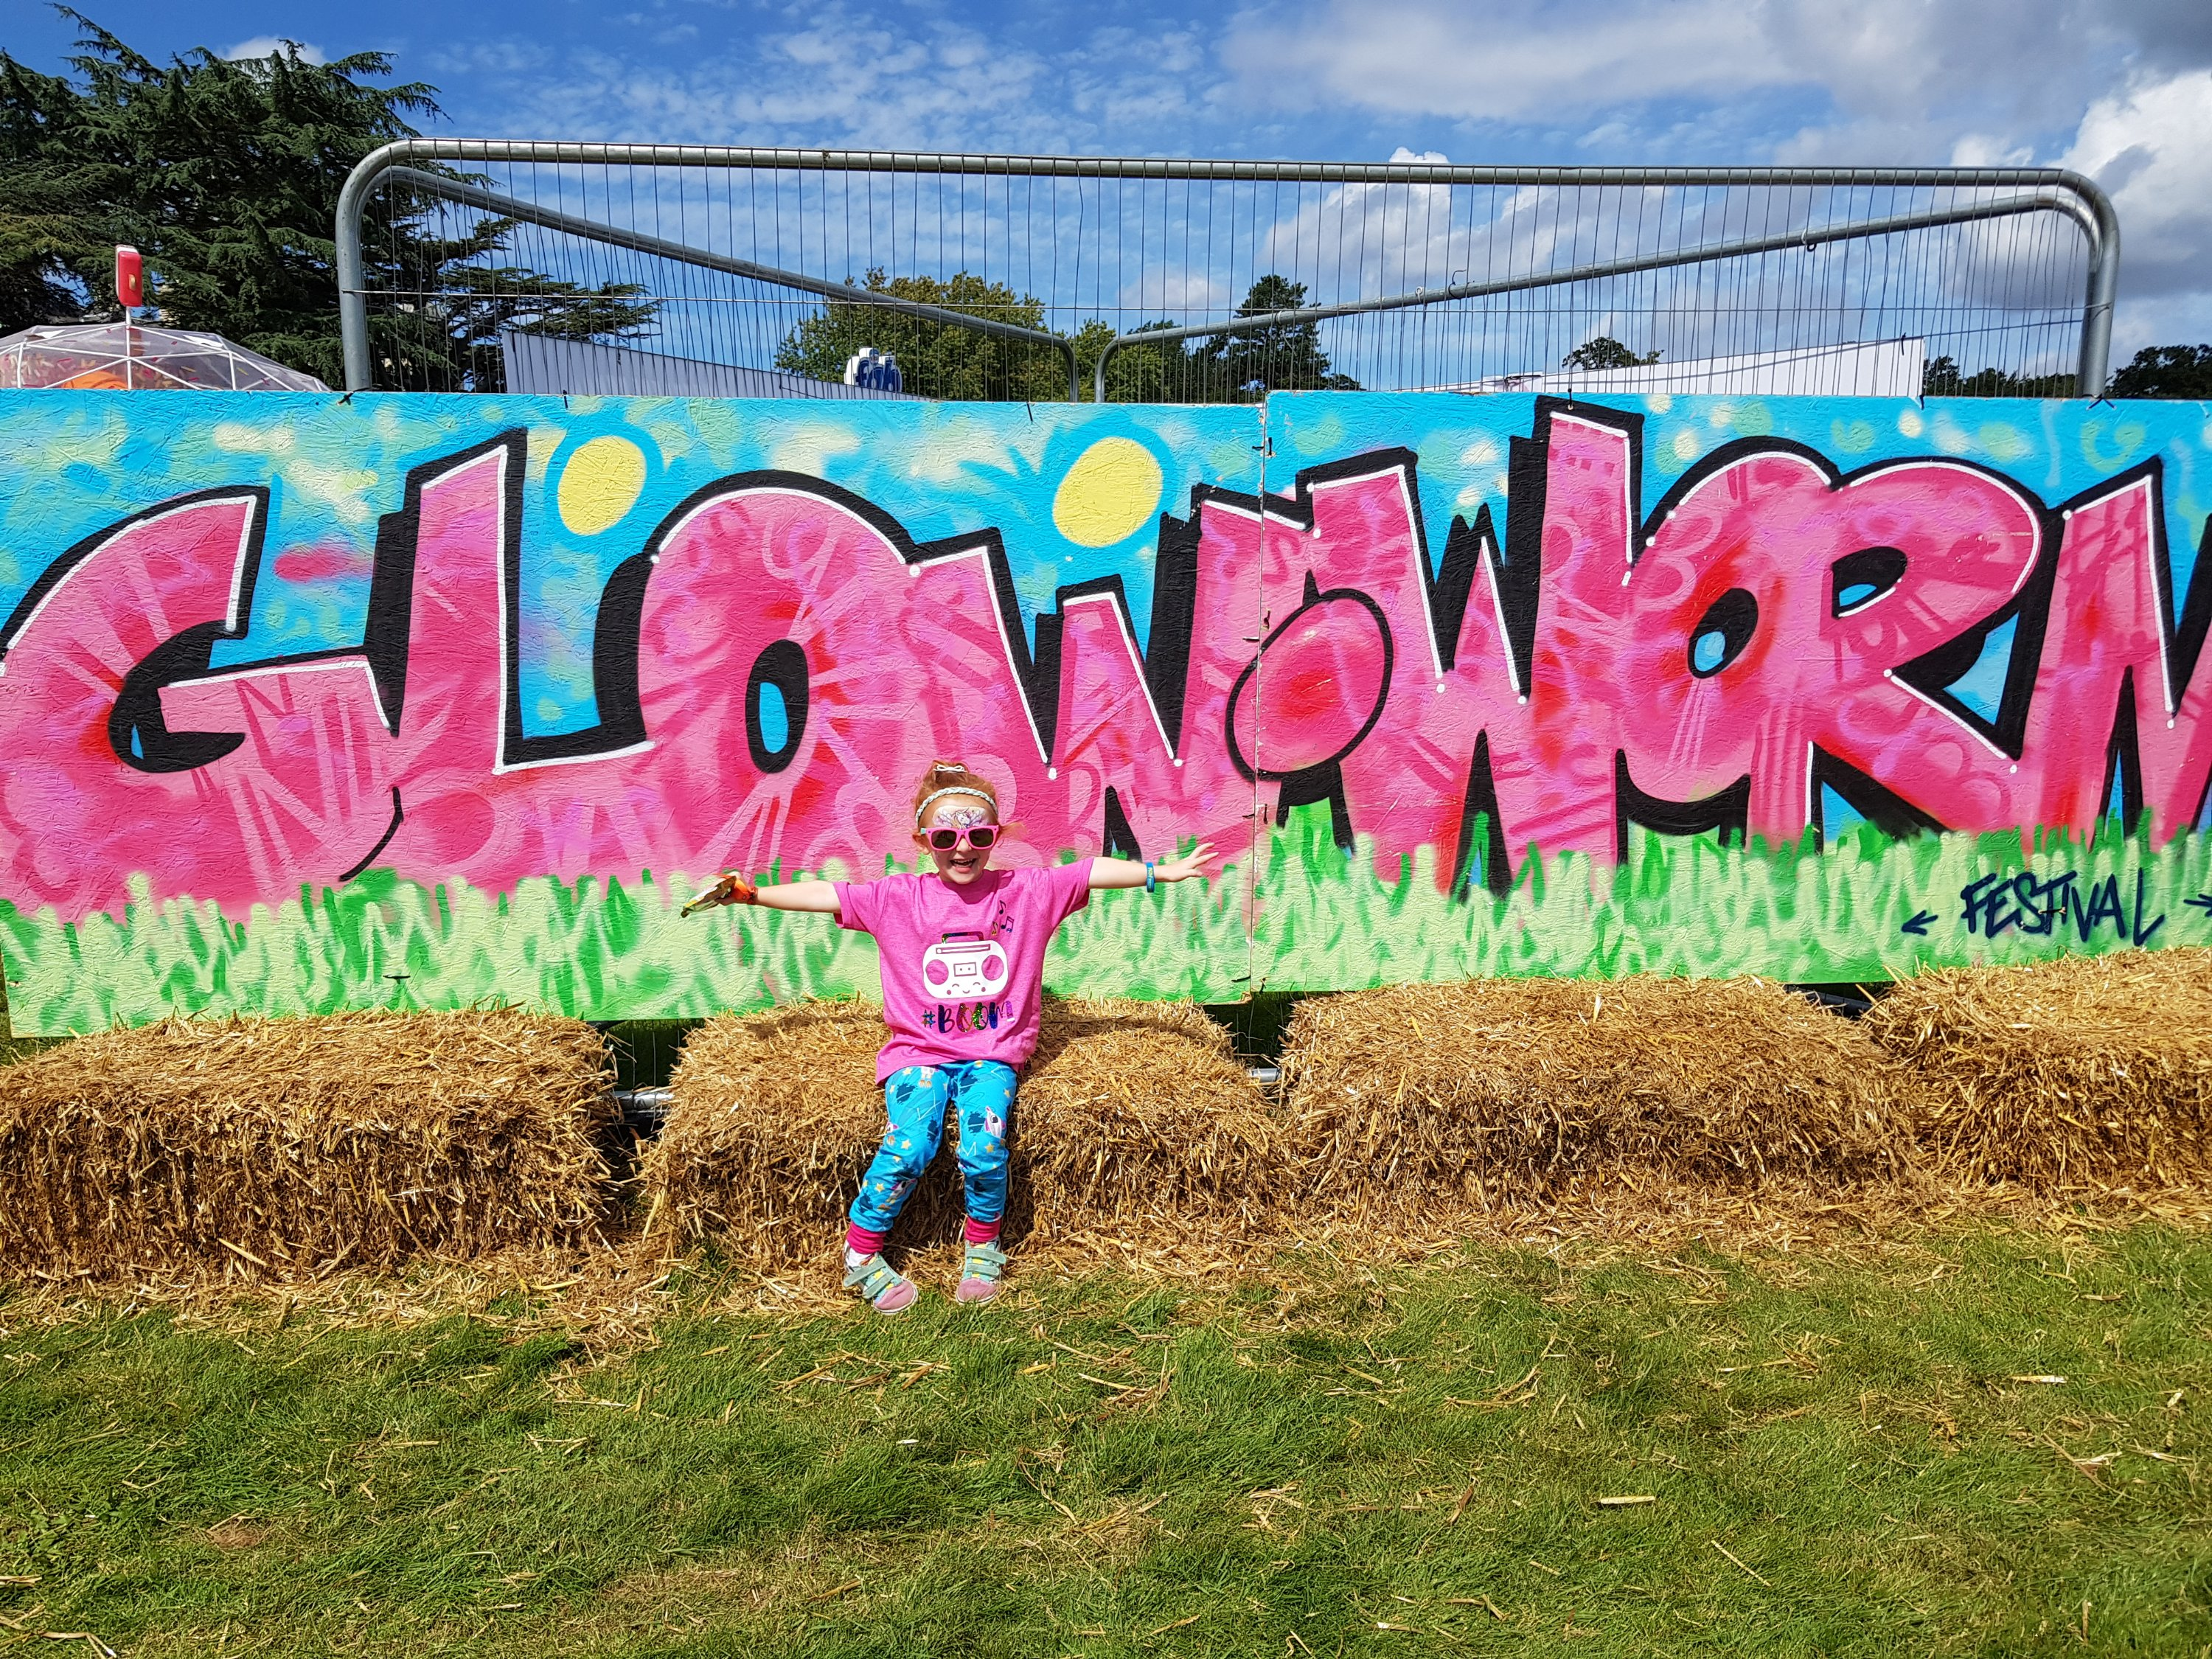 Outfit goals... when you match the Gloworm festival sign!